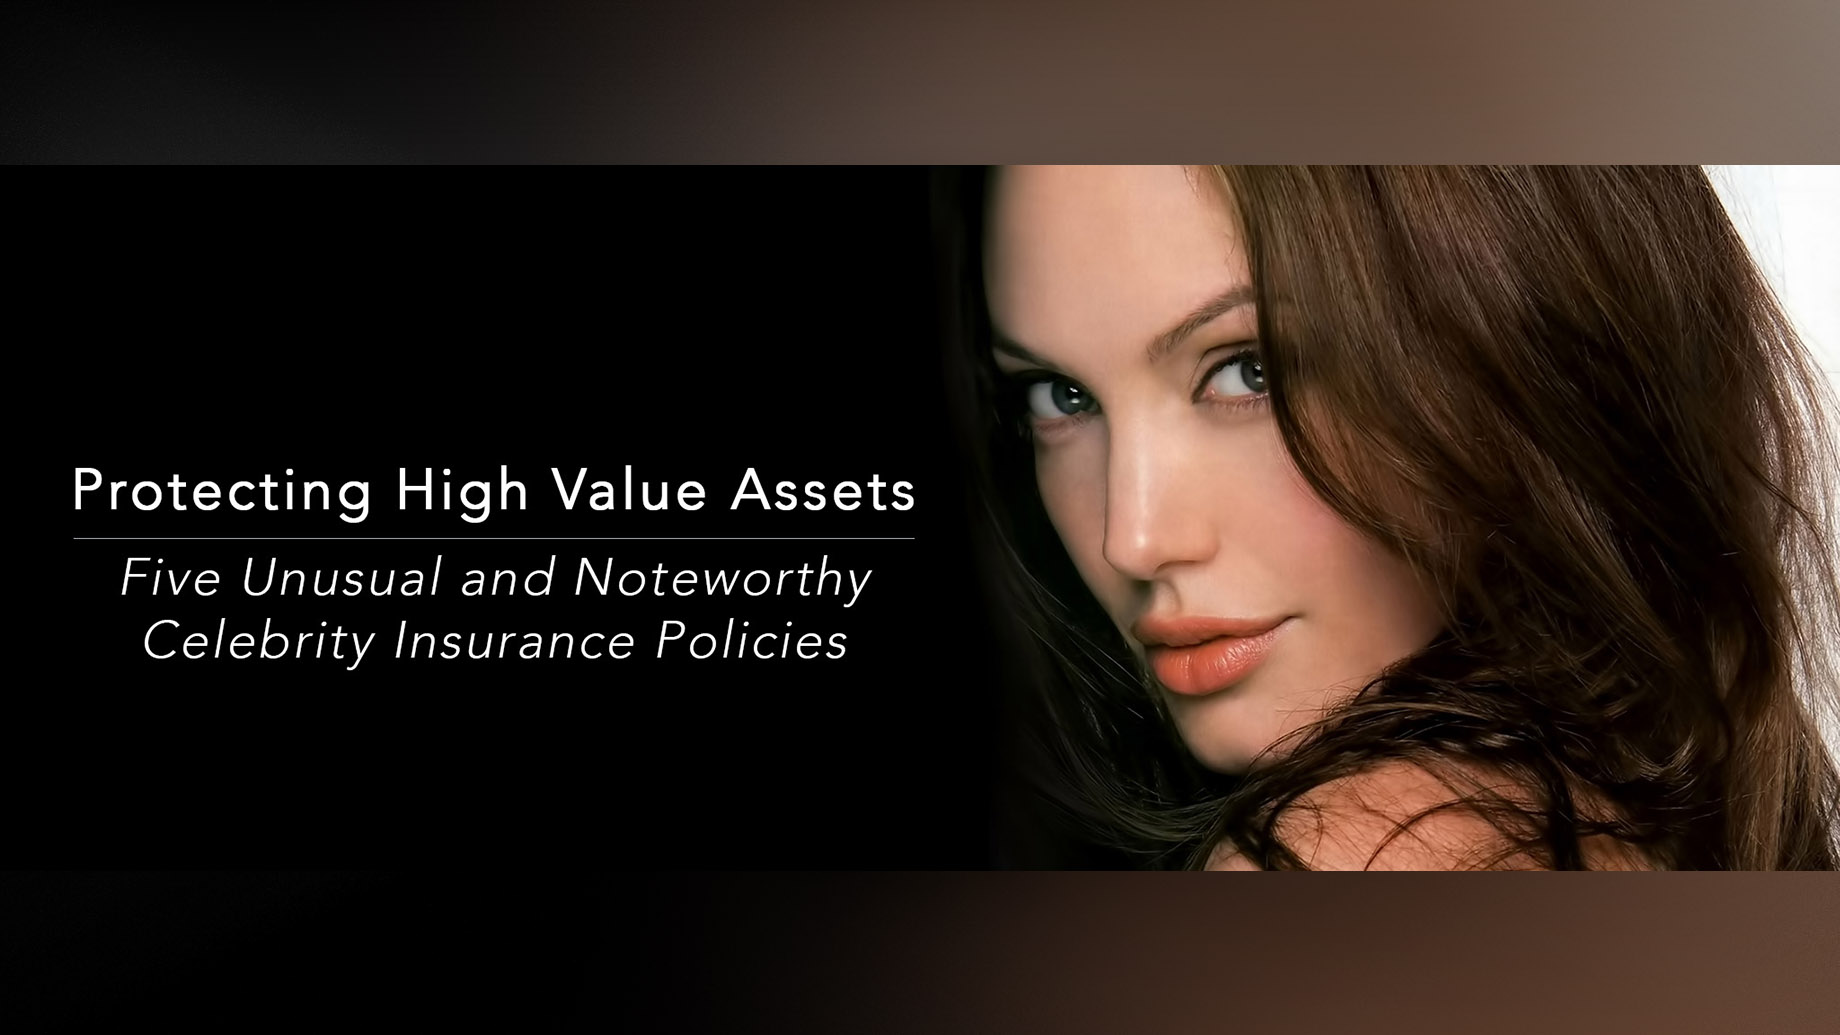 Protecting High Value Assets – Five Unusual and Noteworthy Celebrity Insurance Policies